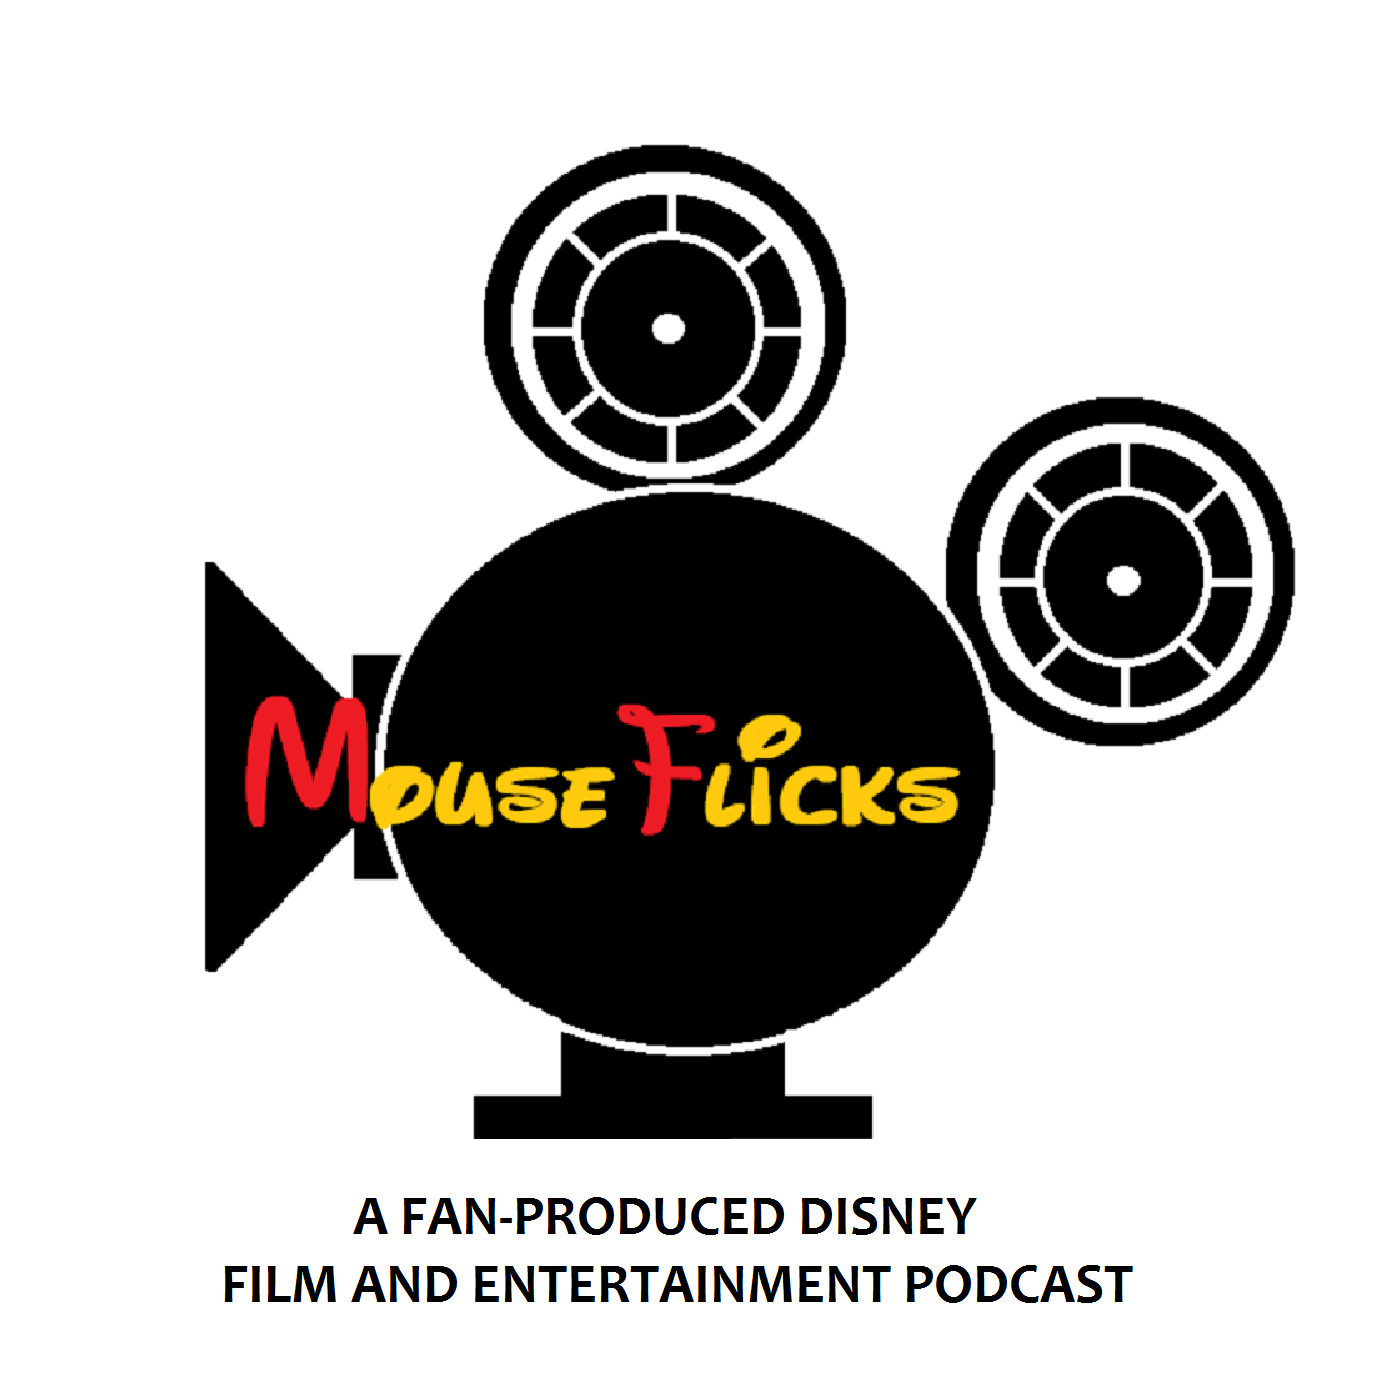 MouseFlicks: A Sassy Little Disney Entertainment Podcast